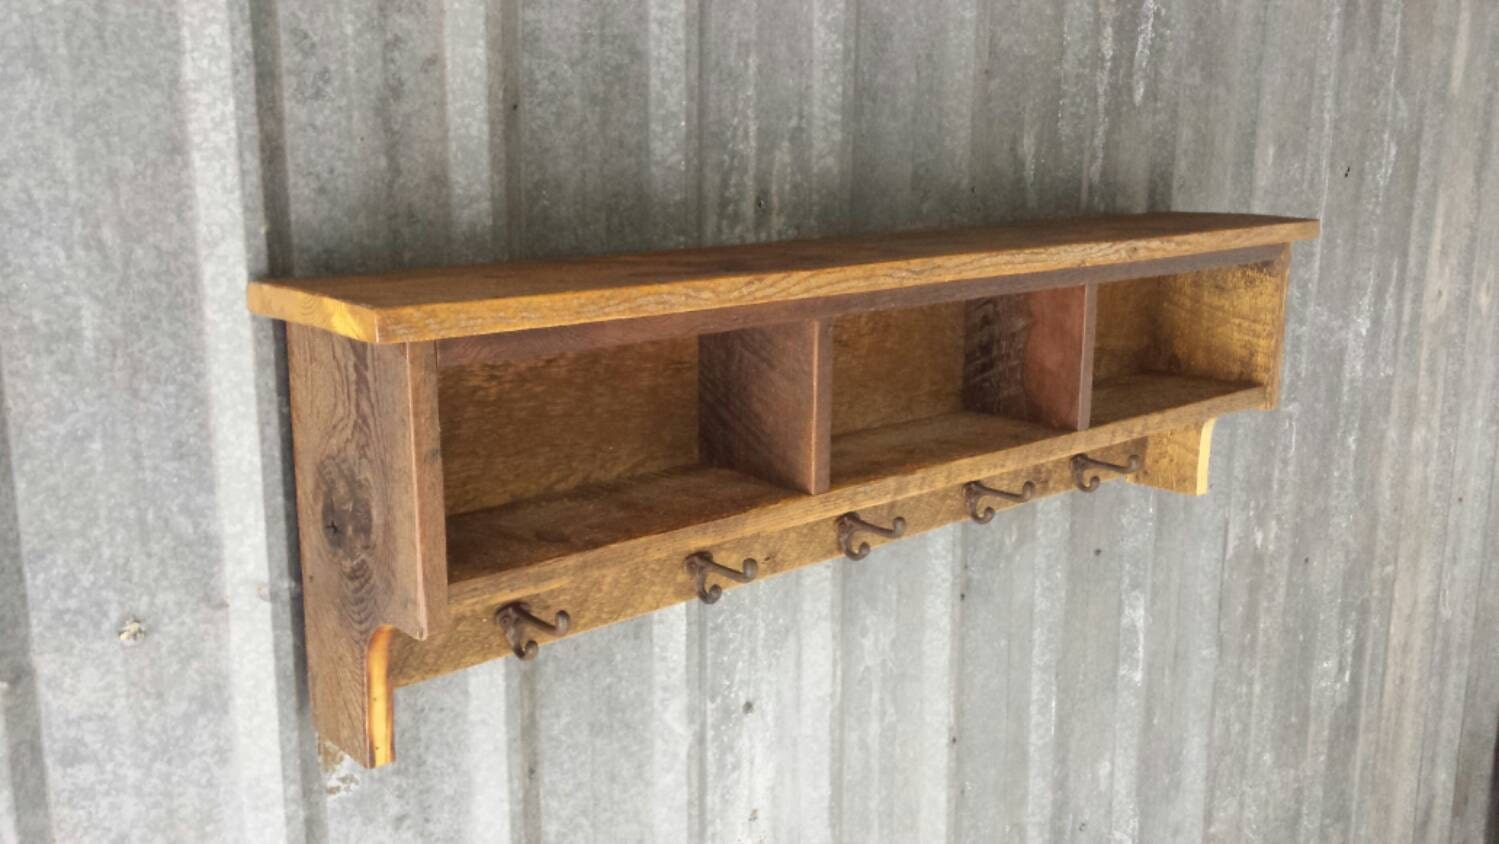 Barn Wood Shelves ~ Rustic reclaimed barnwood shelf cubby coat rack by